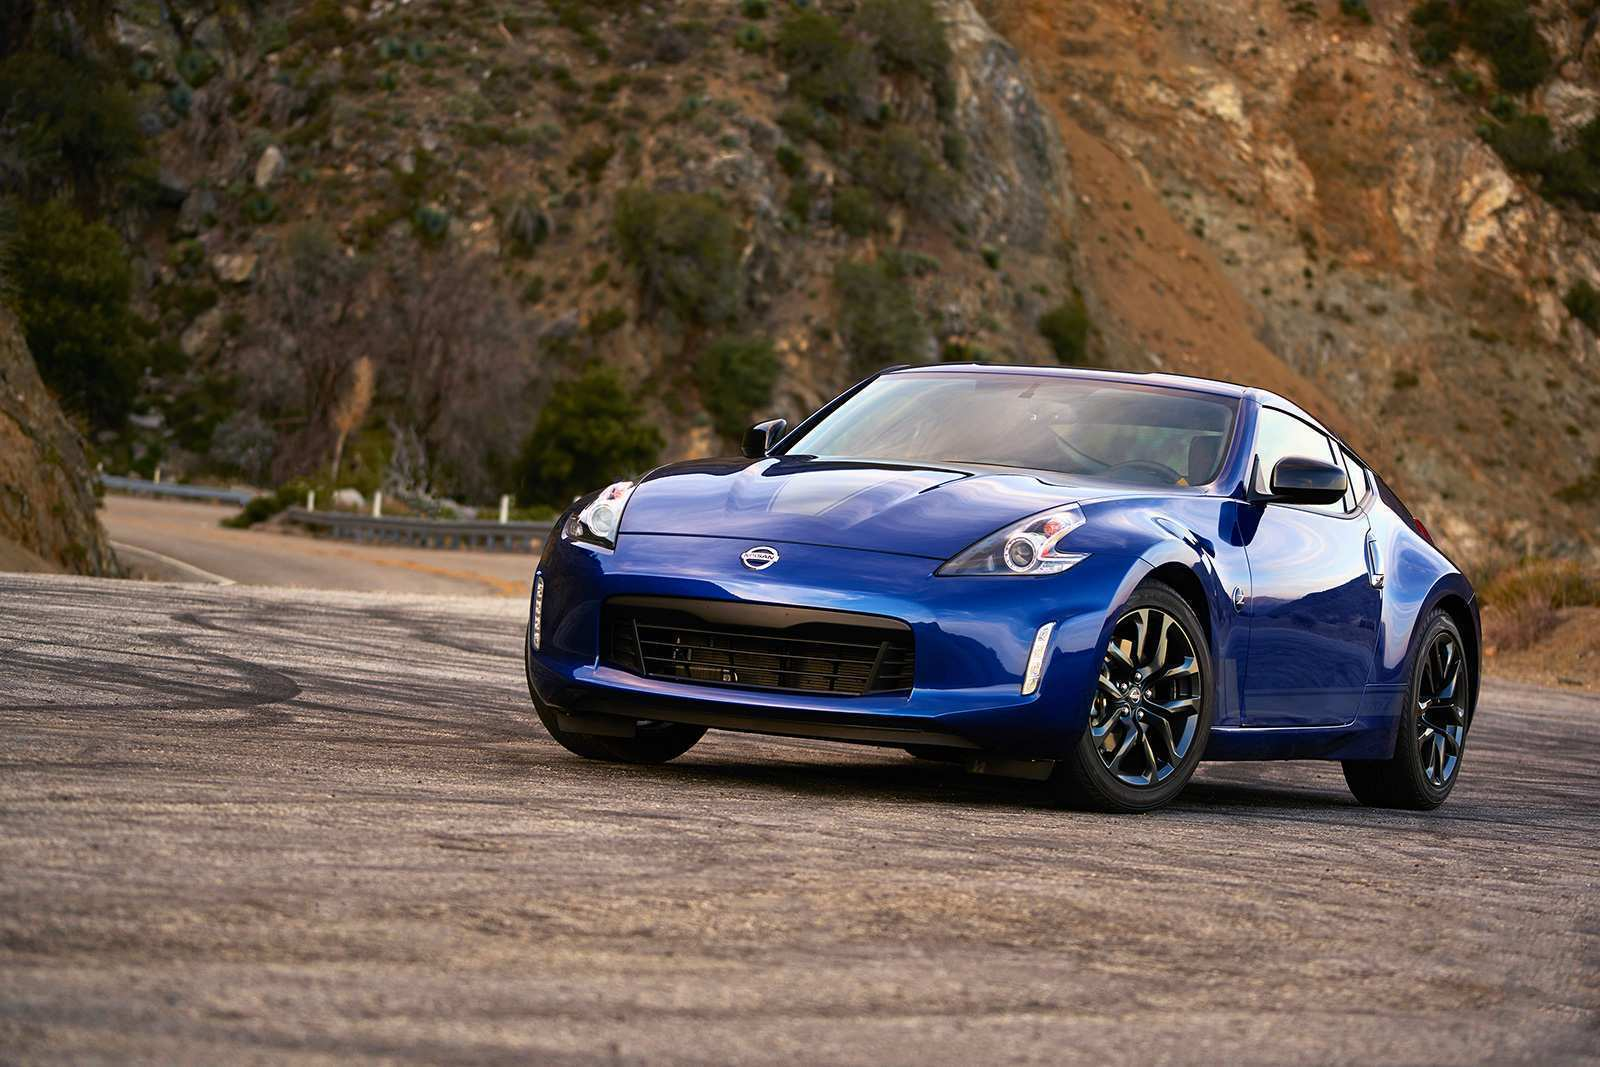 76 Gallery of 2019 Nissan Z370 Pricing for 2019 Nissan Z370